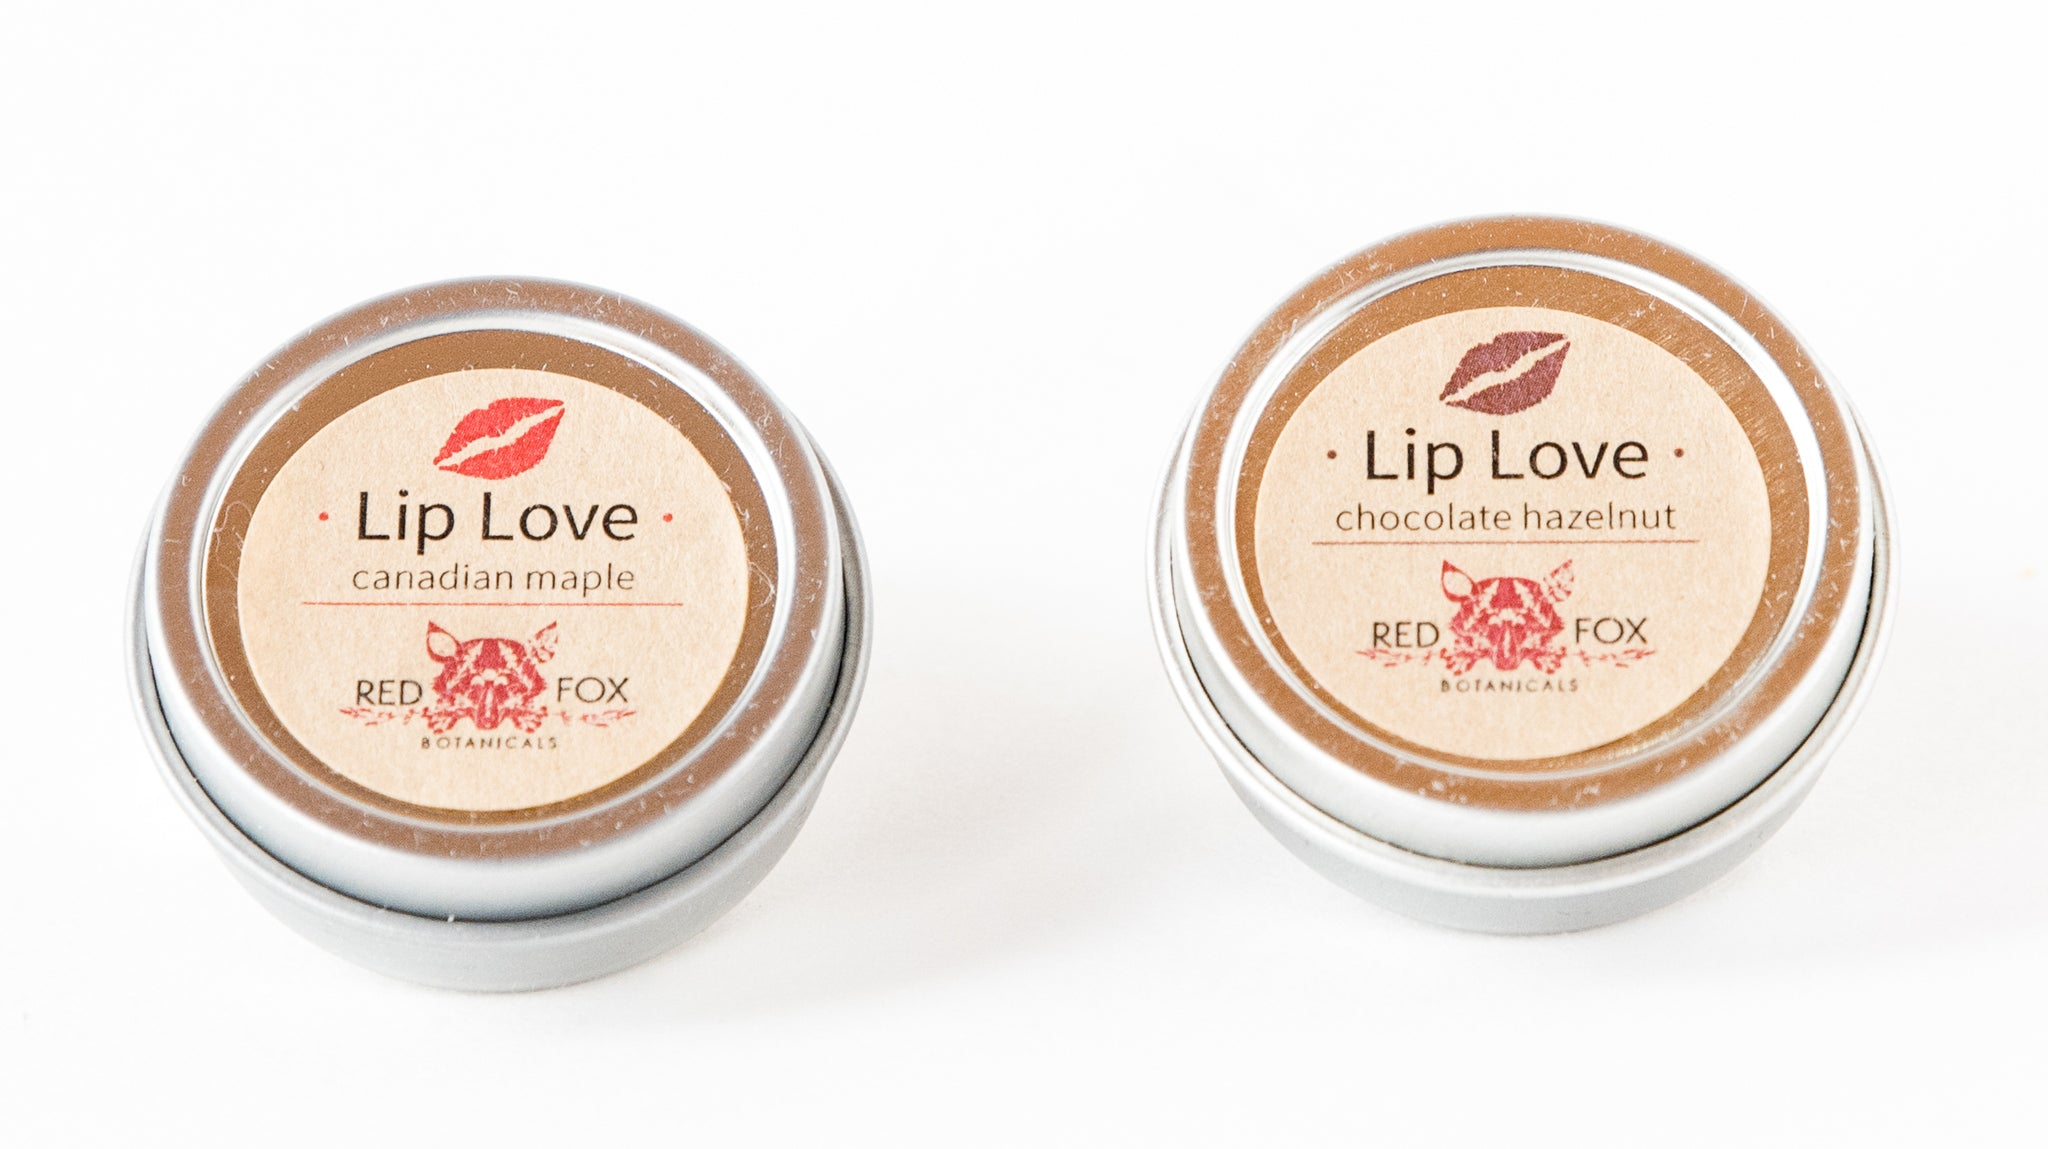 LIP LOVE - Canadian Maple